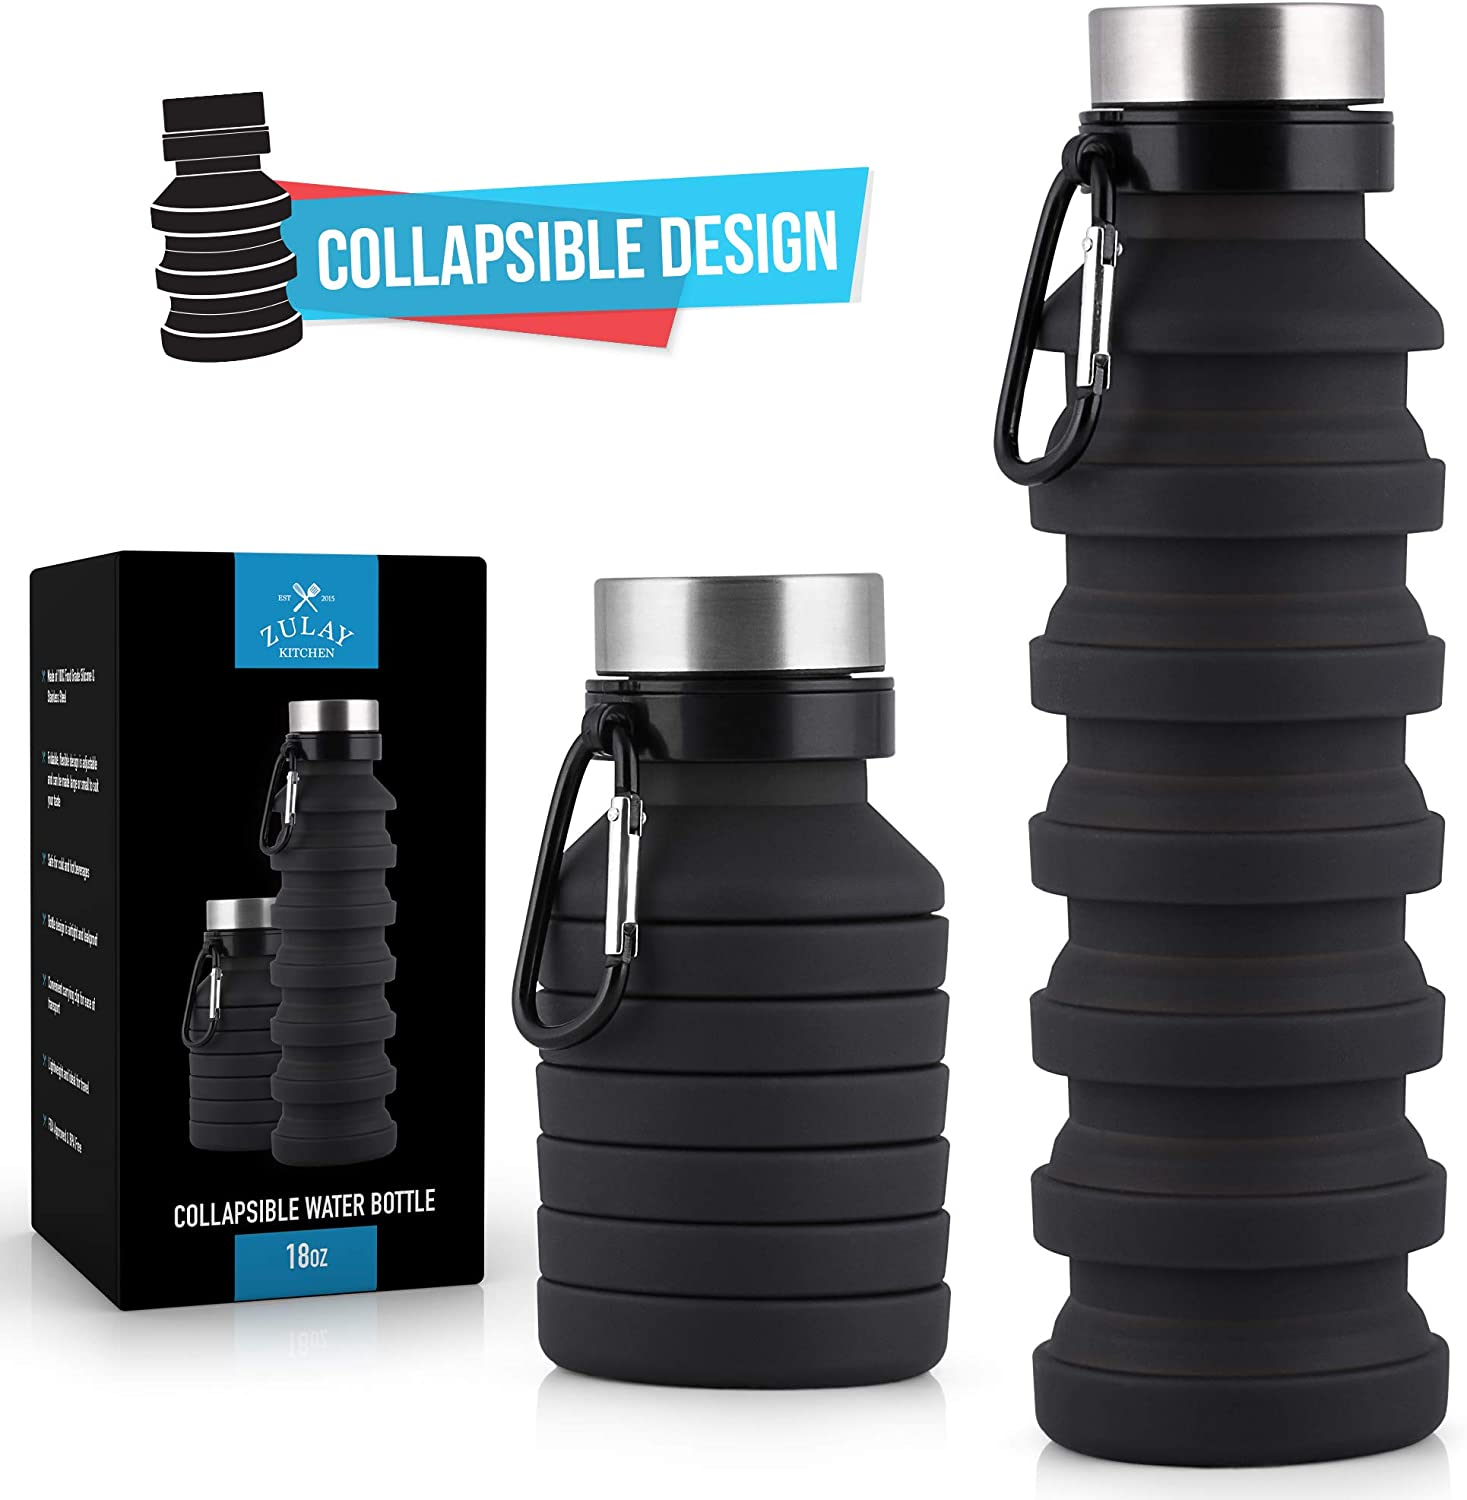 Pretty Waist Collapsible Water Bottle to Travel Foldable Jug for Hiking Camping or Backpacking